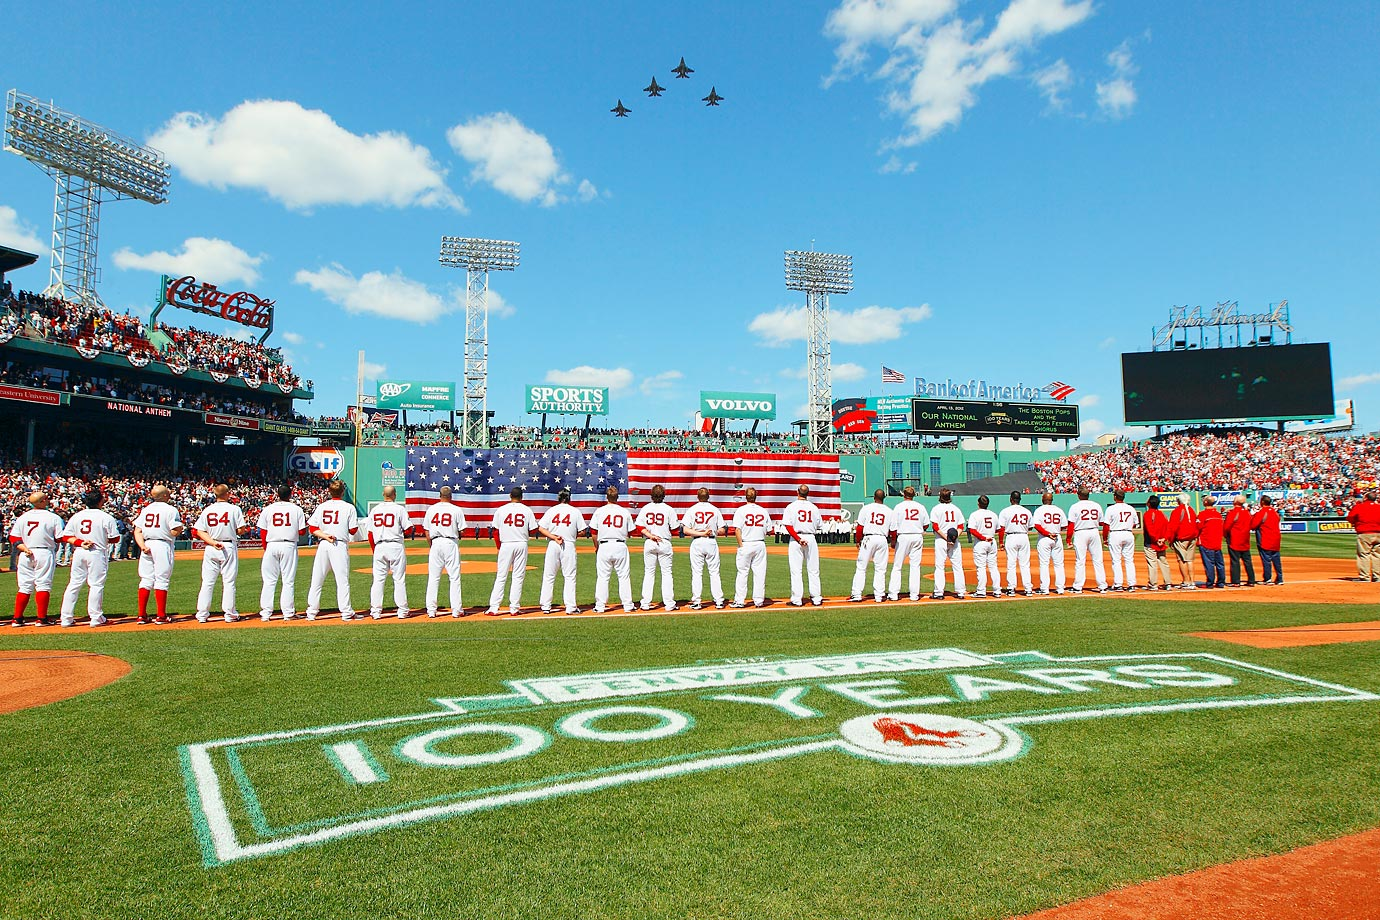 The 158th Fighter Wing of the Vermont Air National Guard perform a flyover before a 2012 game between Boston and Tampa Bay  at Fenway Park.